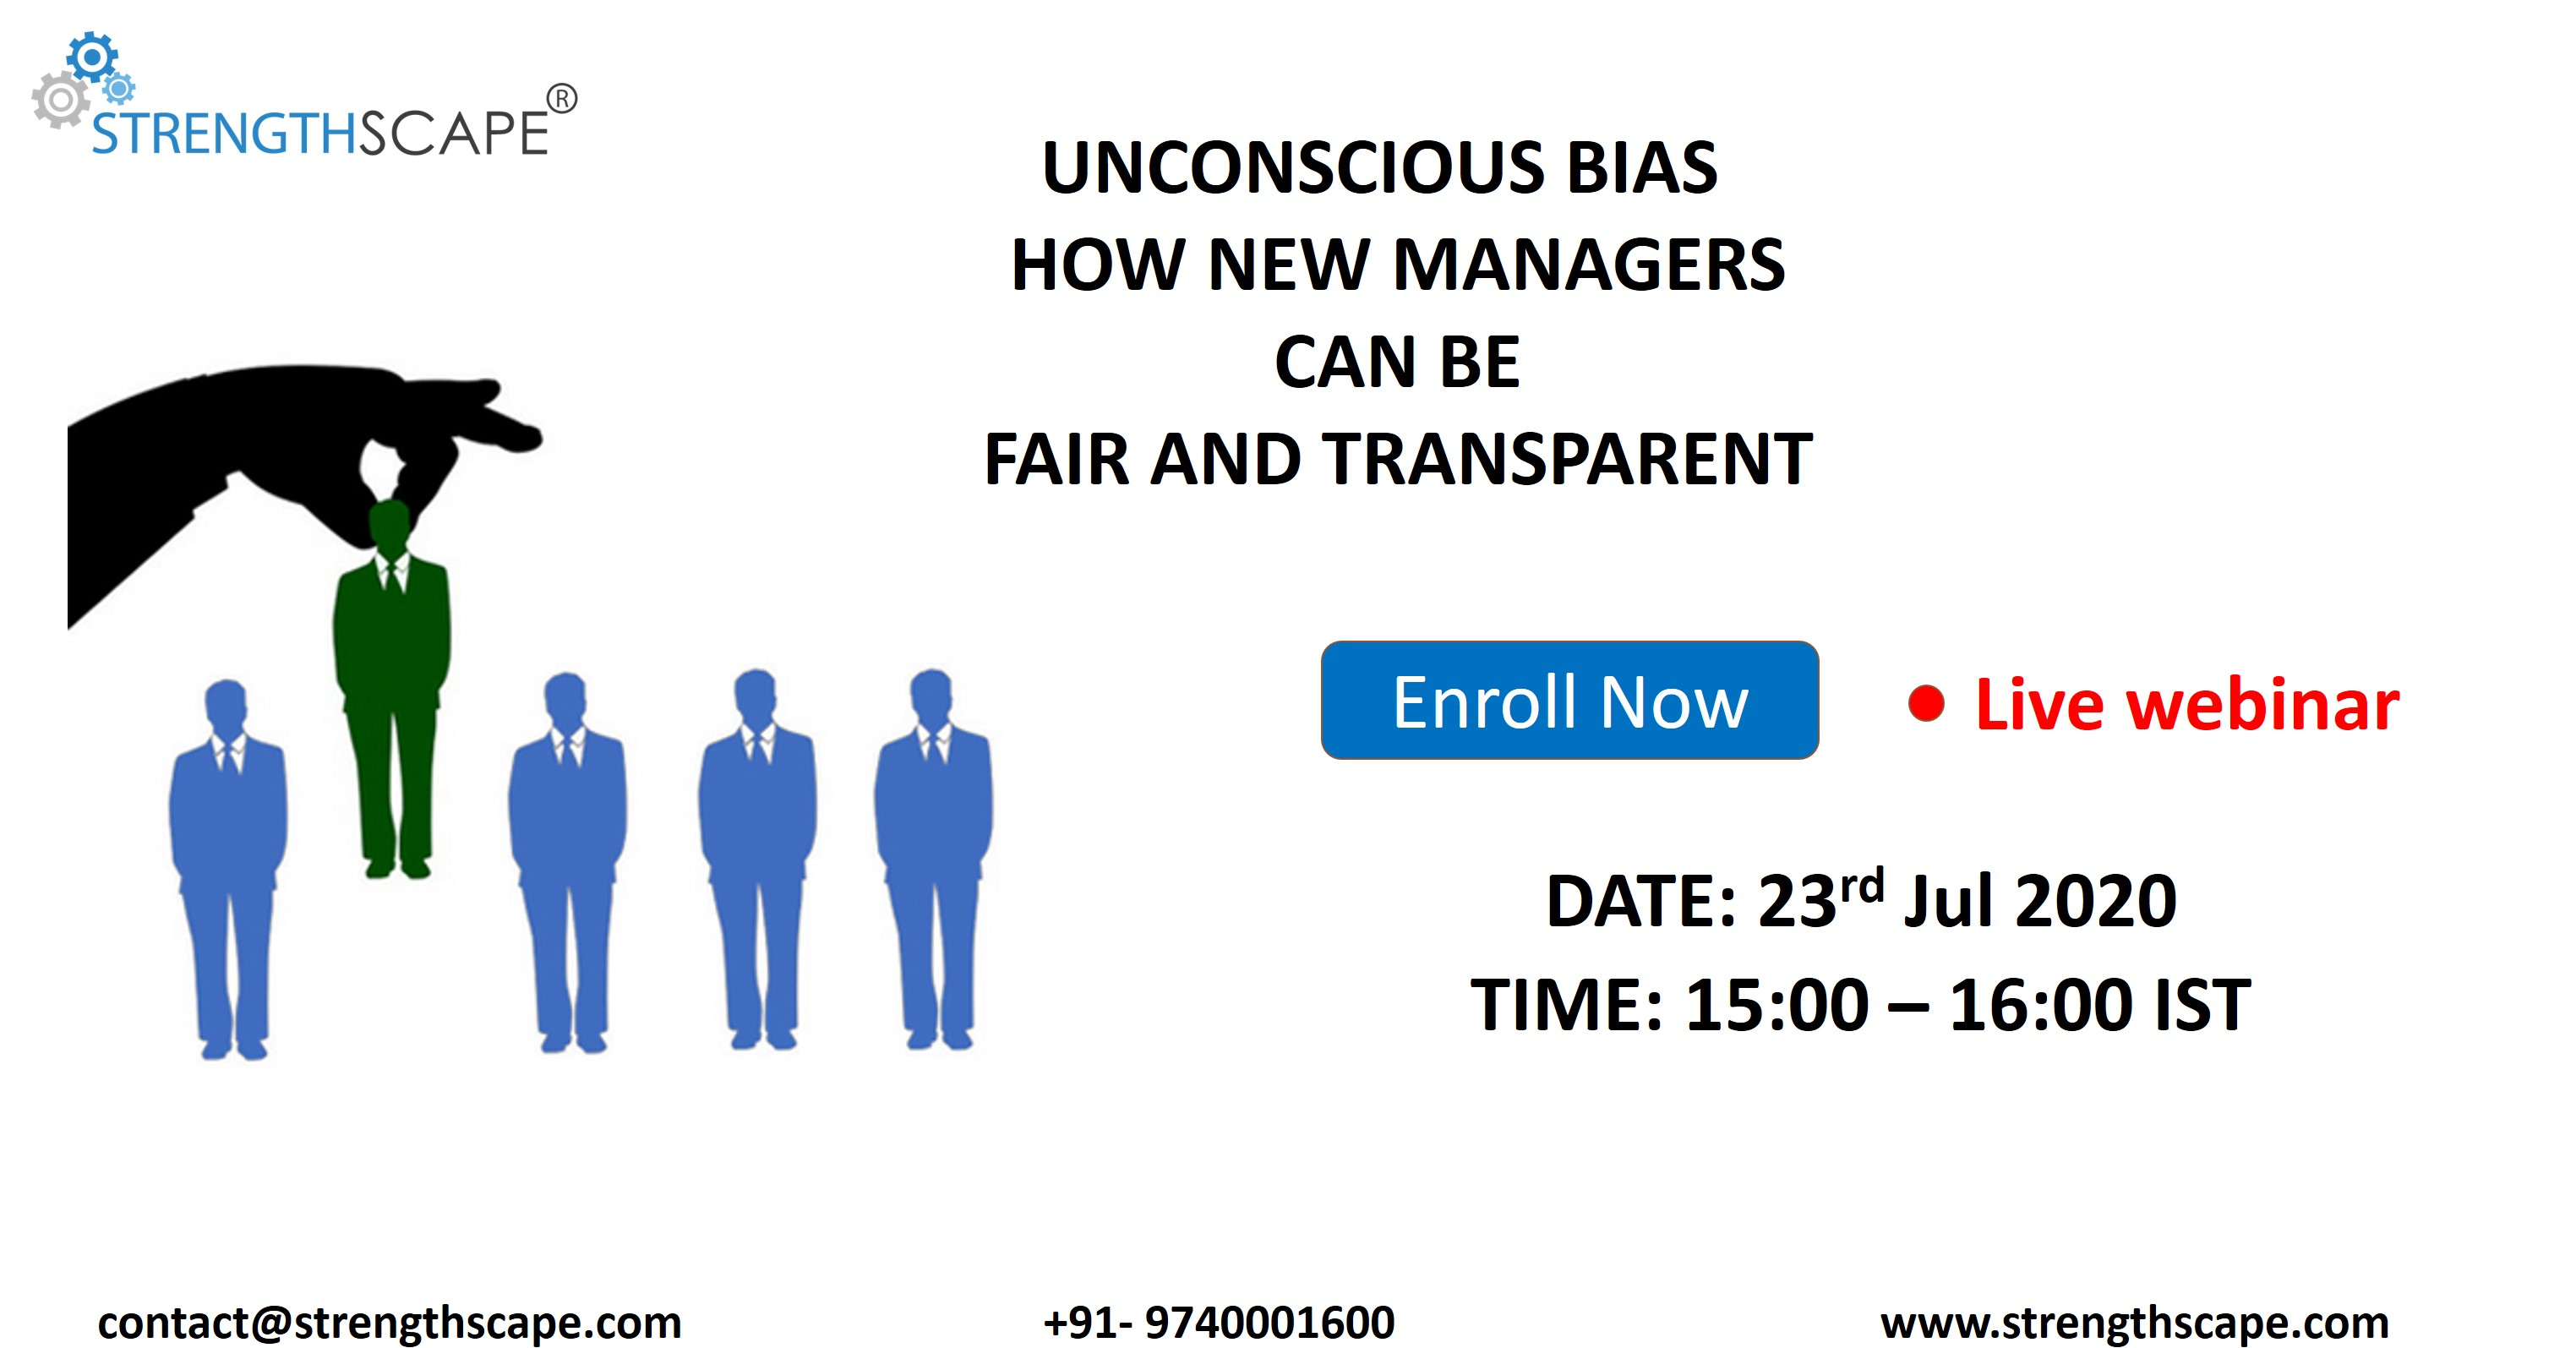 Unconscious Bias - How New Managers can be Fair and Transparent